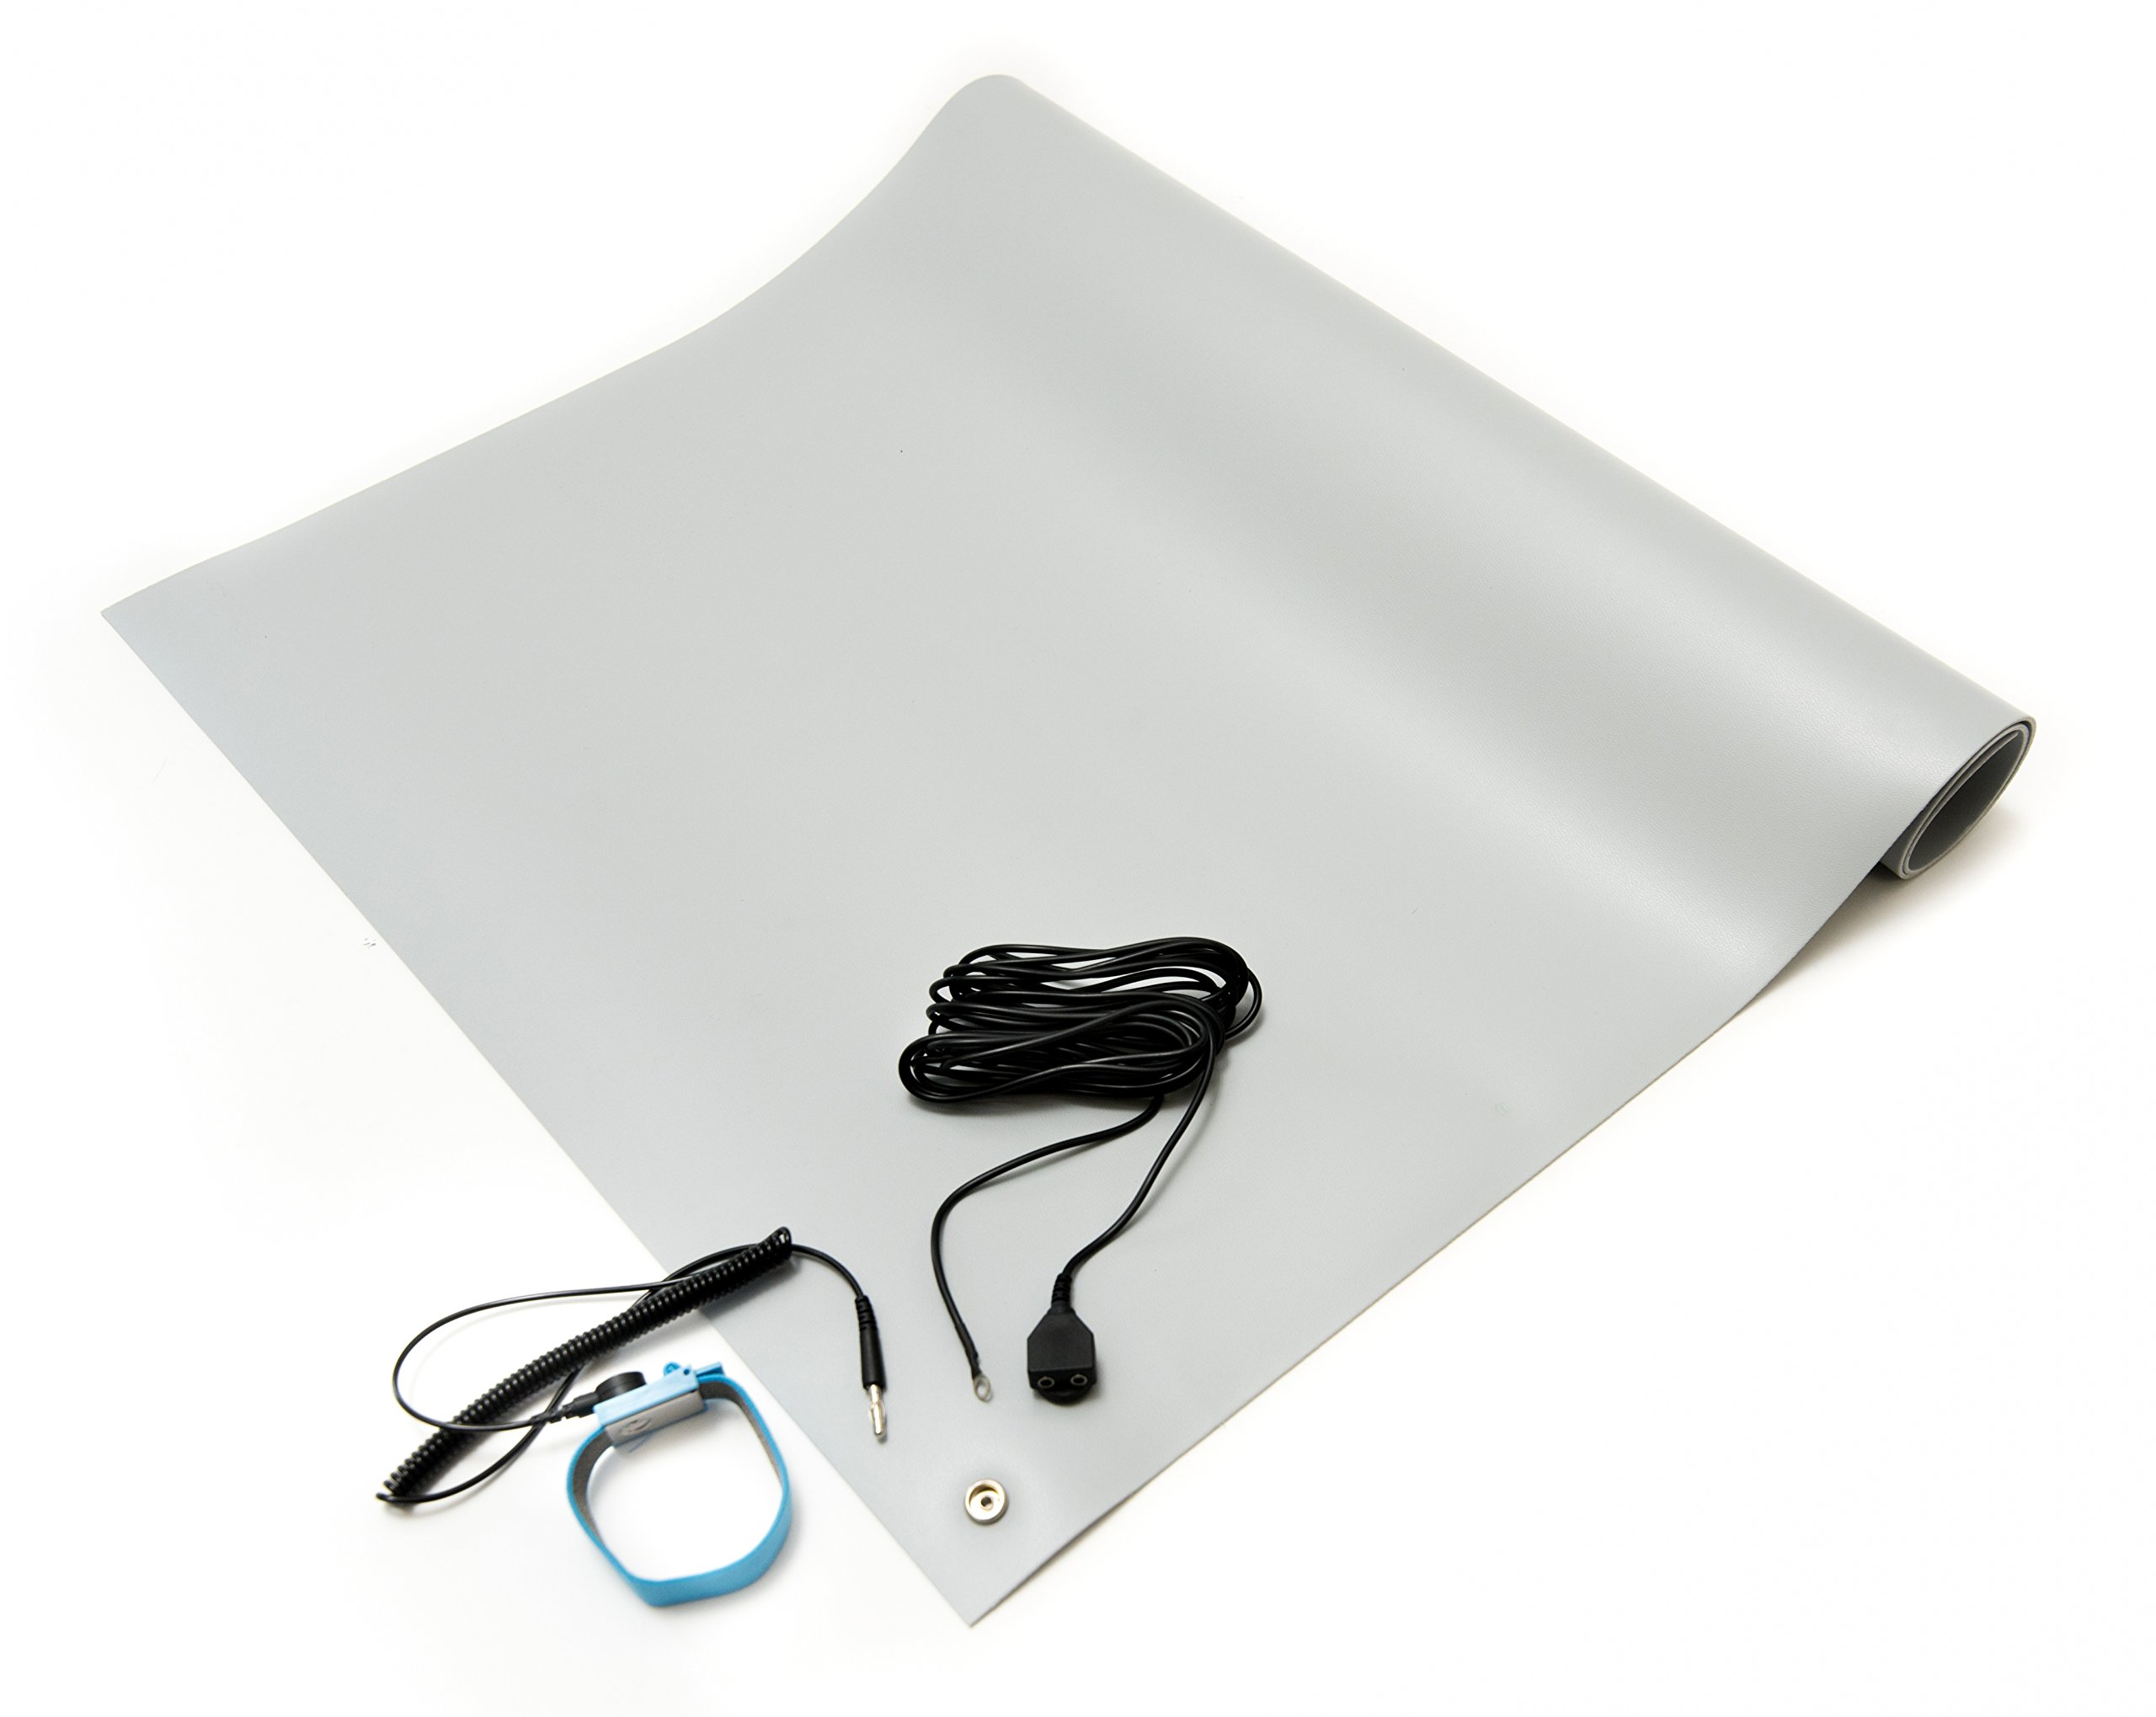 Bertech ESD Mat Kit with a Wrist Strap and a Grounding Cord, 18'' Wide x 30'' Long x 0.093'' Thick, Gray